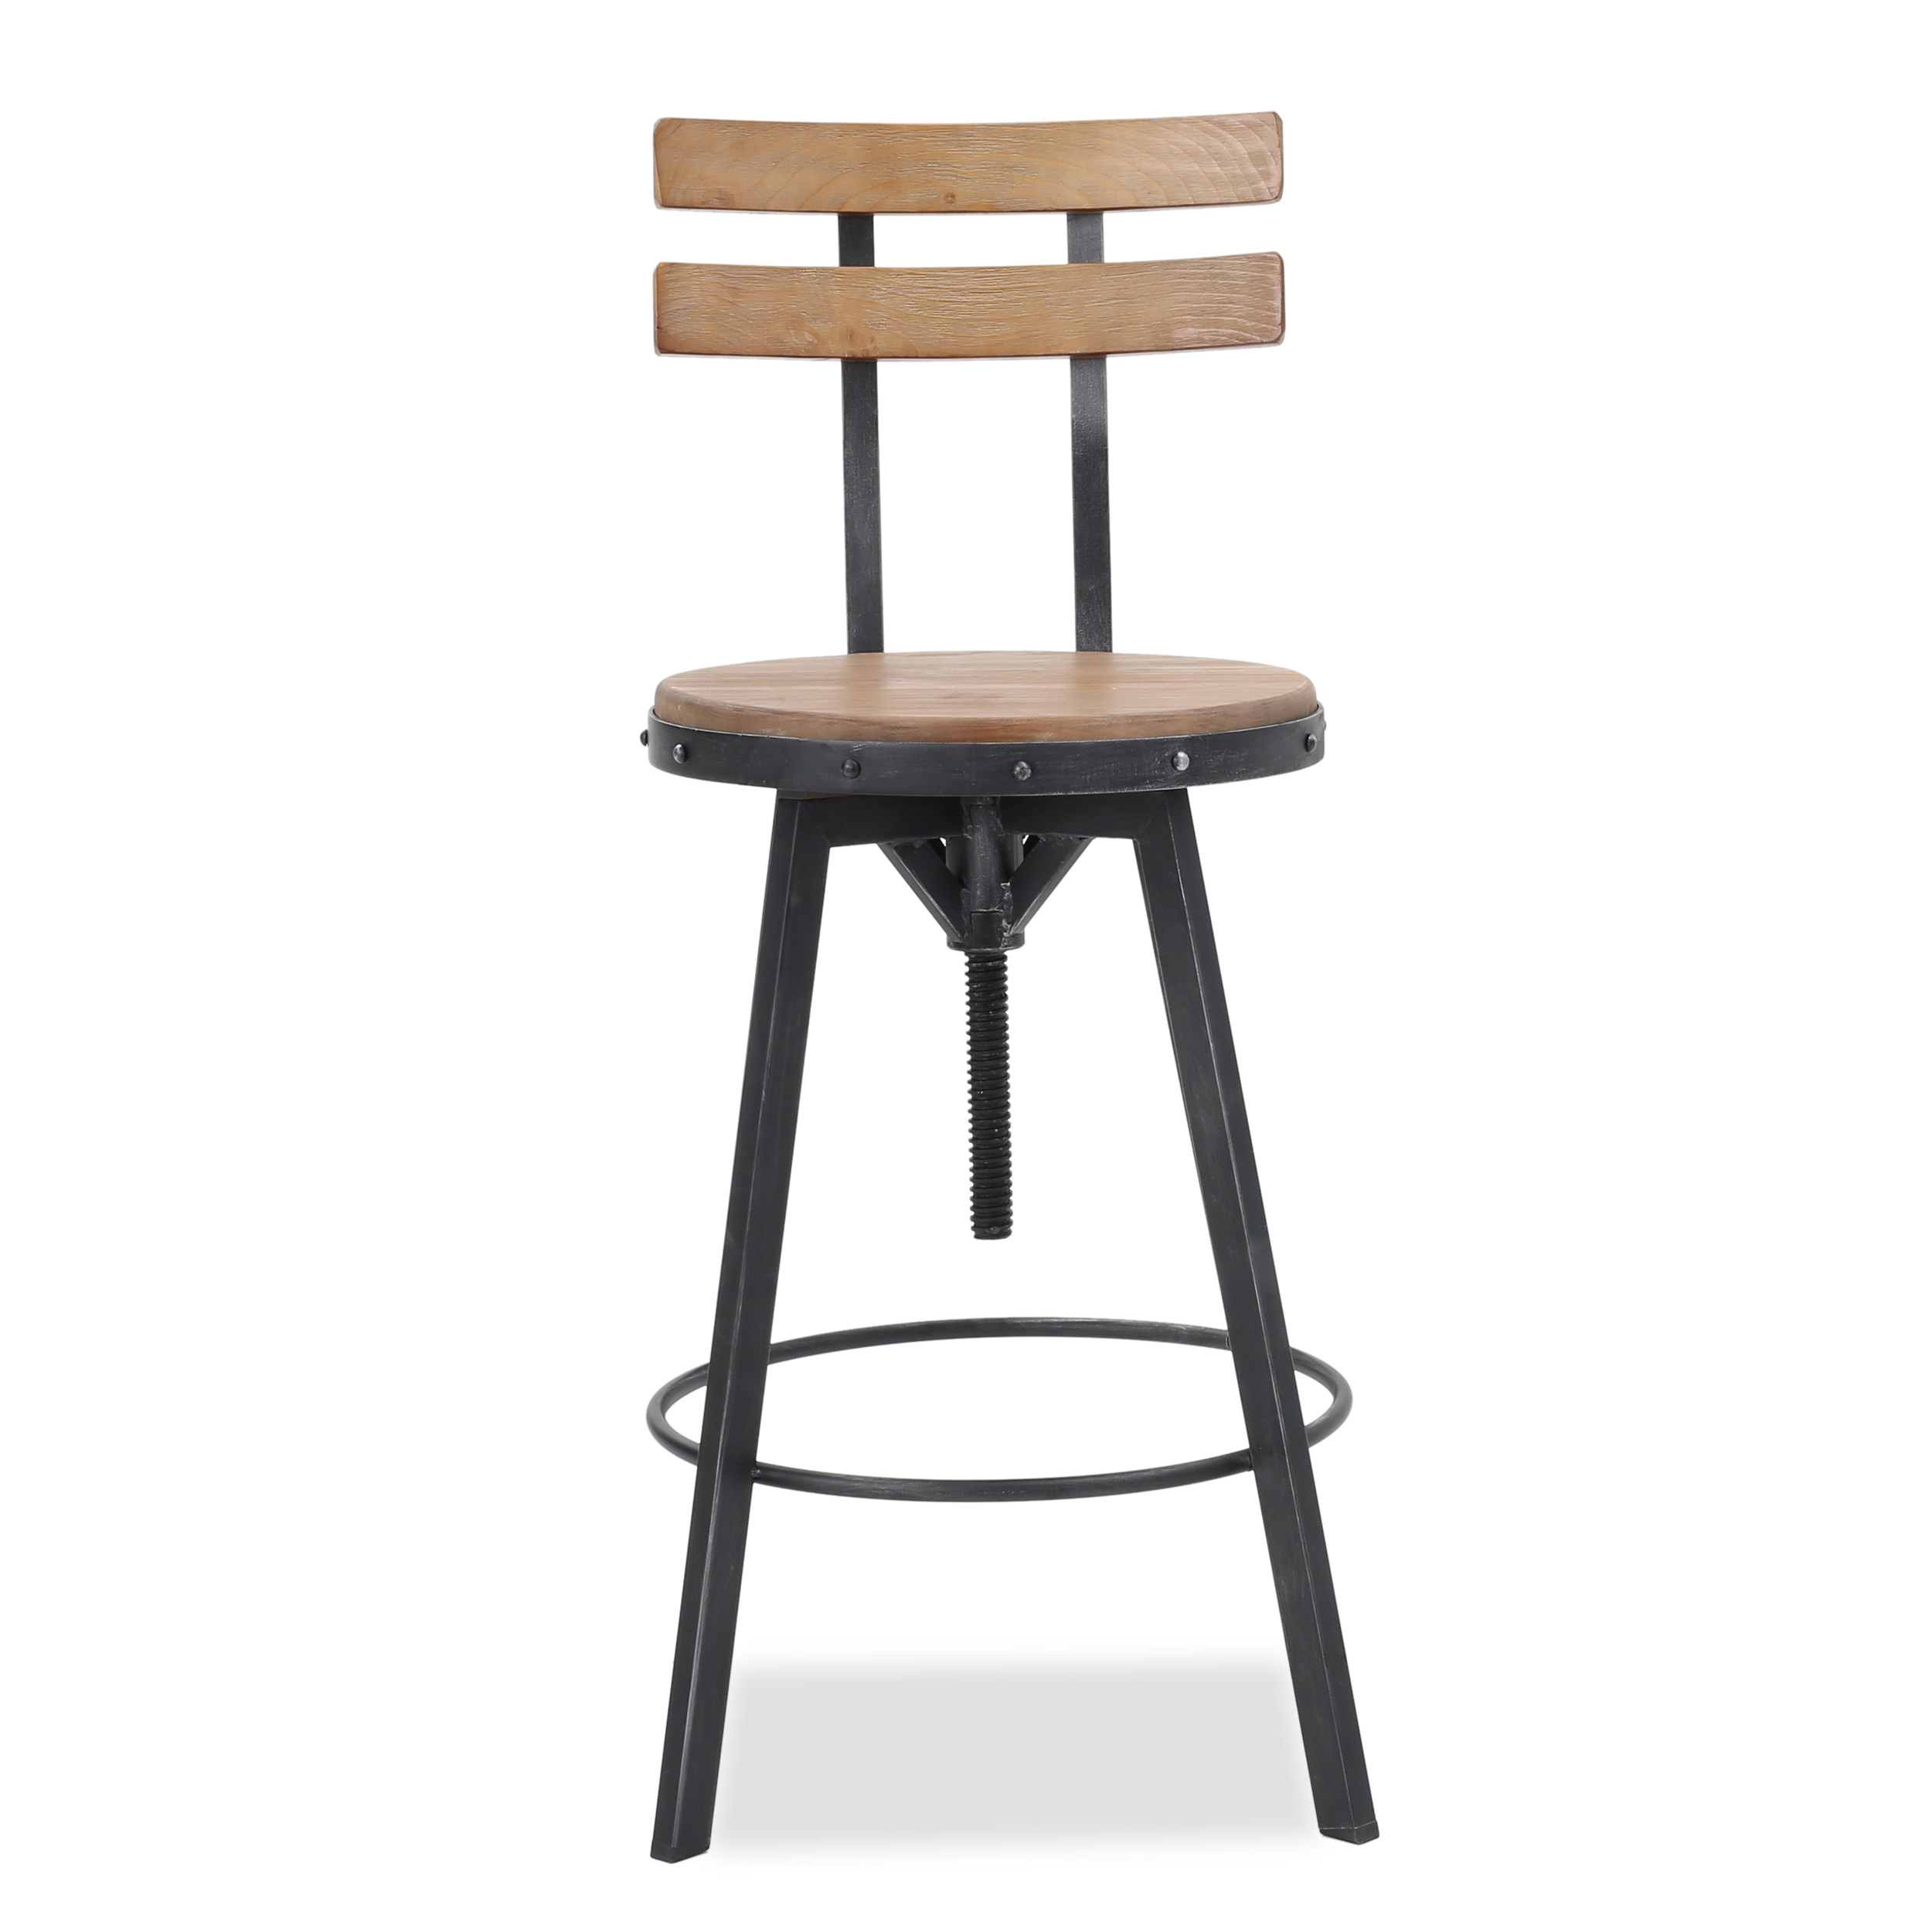 Marus Antique Finish Firwood Bar Stool